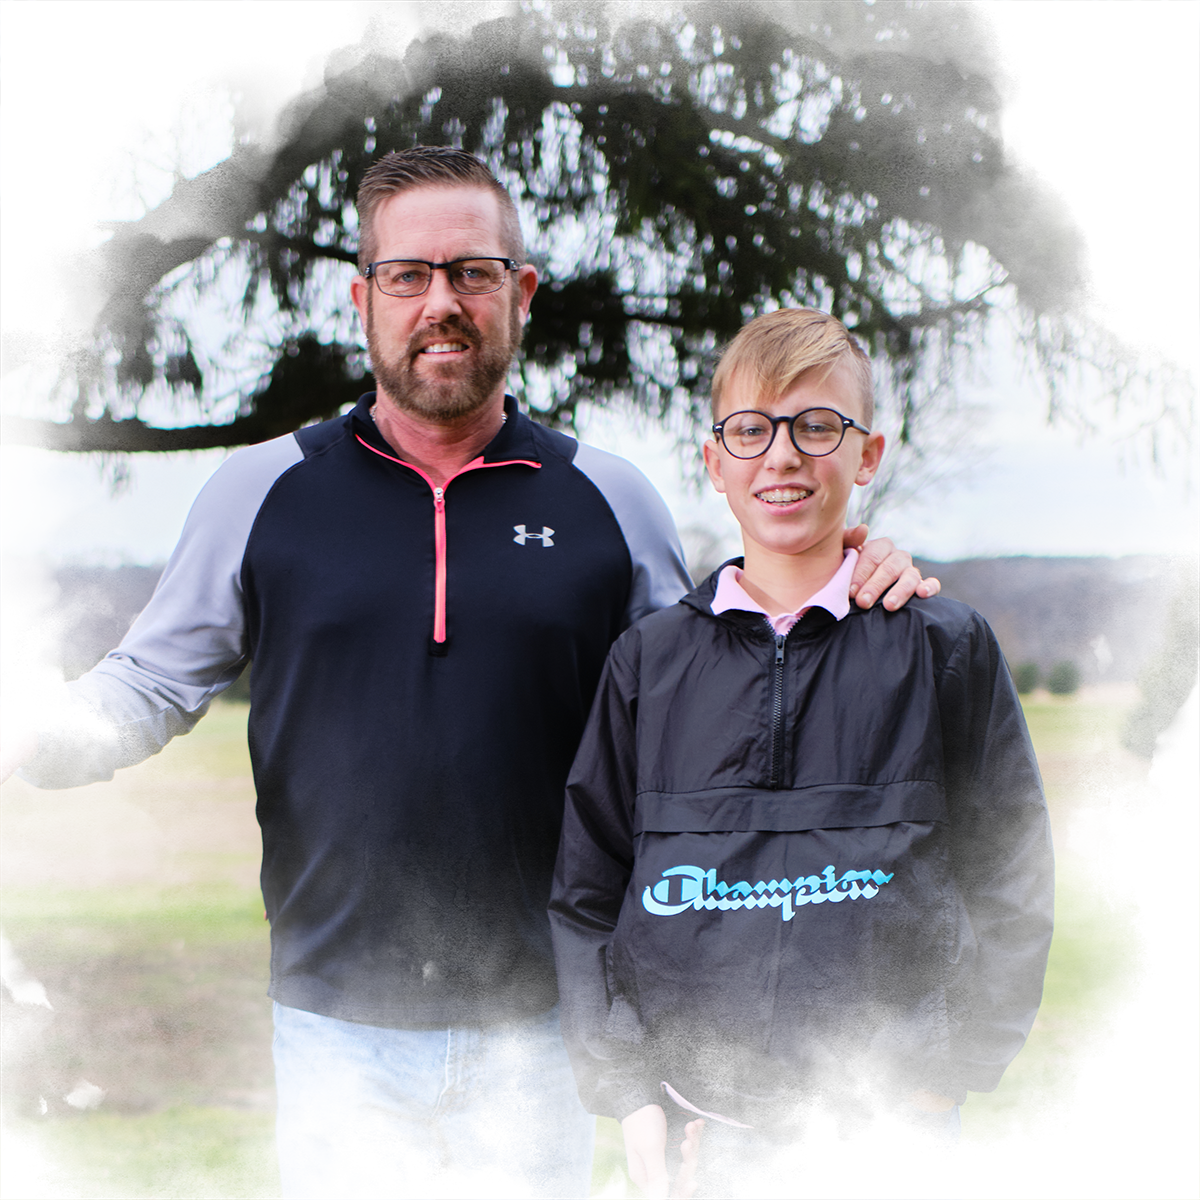 Shawn Shuster '98 stands holding a golf club with his son